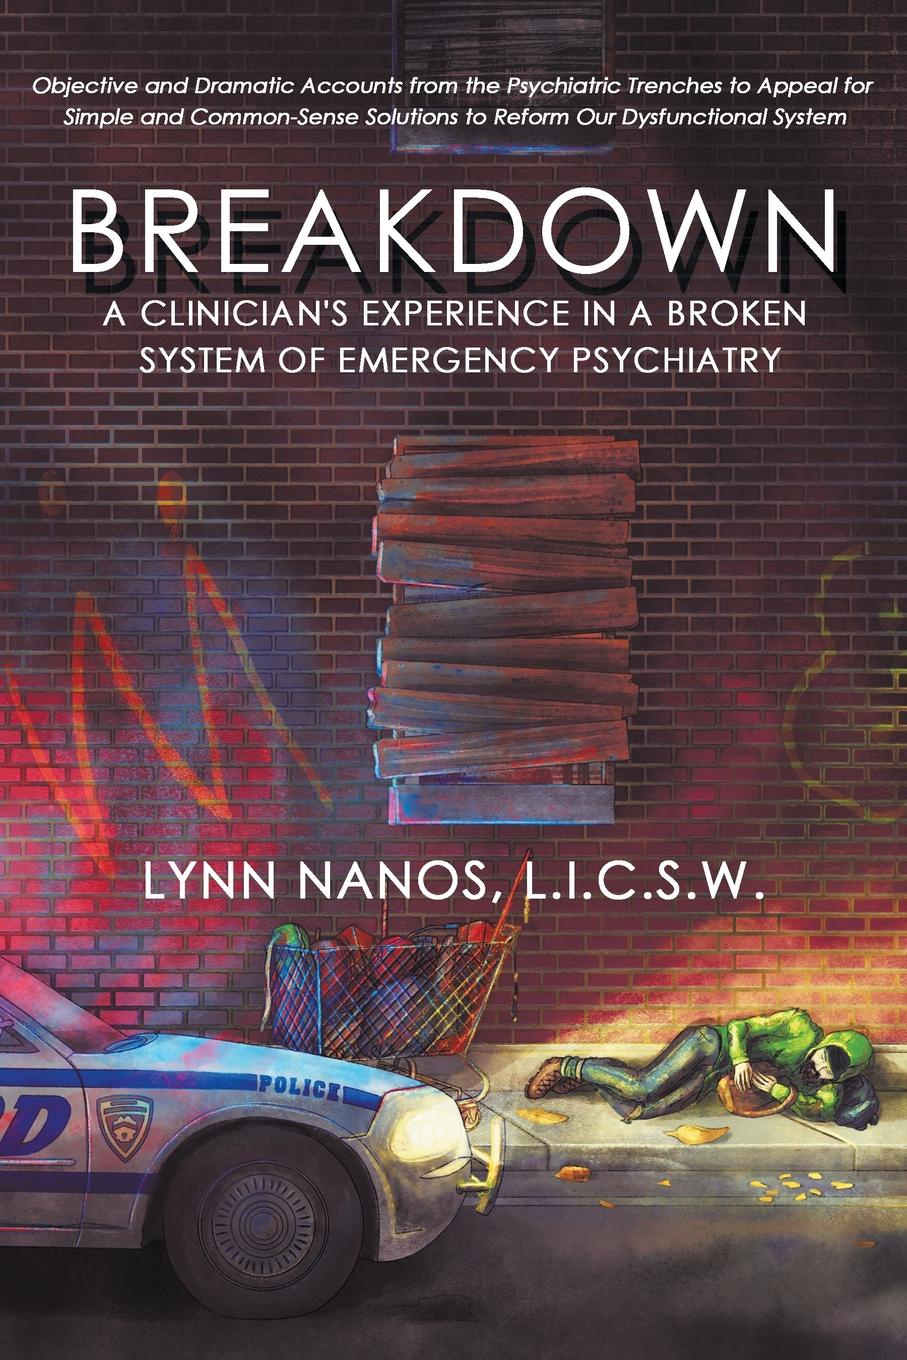 Lynn Nanos Breakdown. A Clinician.s Experience in a Broken System of Emergency Psychiatry